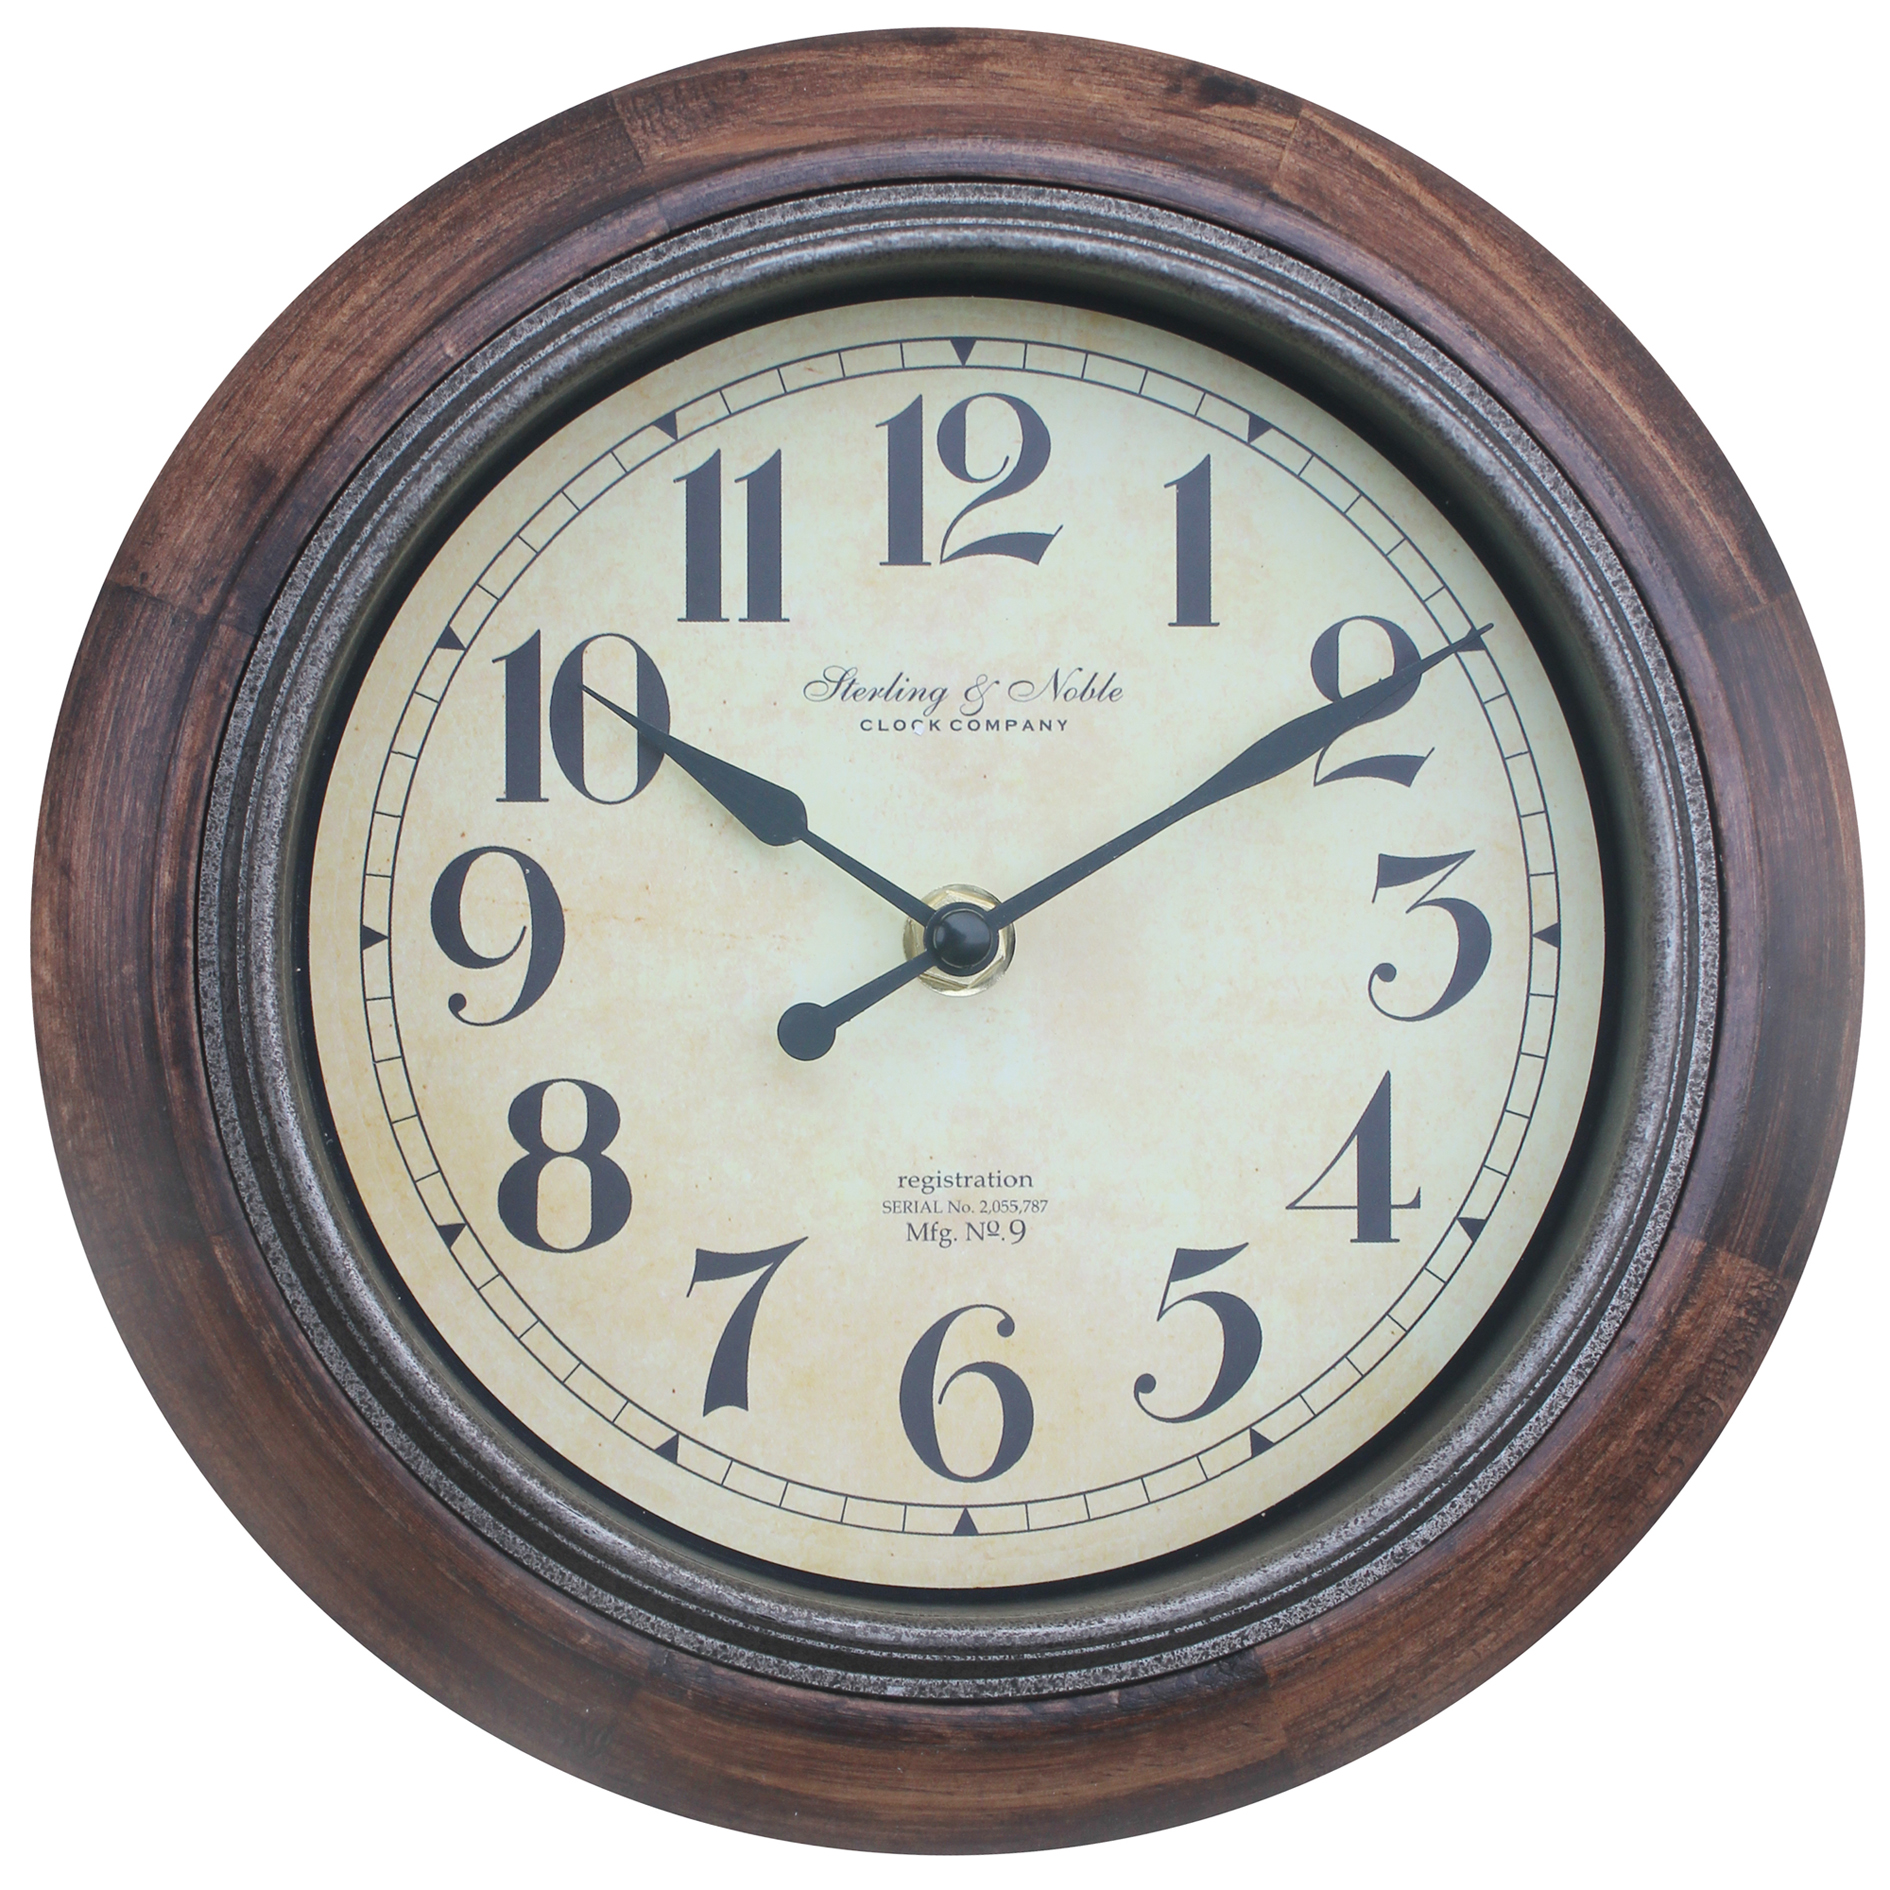 "BETTER HOMES AND GARDENS 8.88"" RUSTIC WOOD CLOCK"